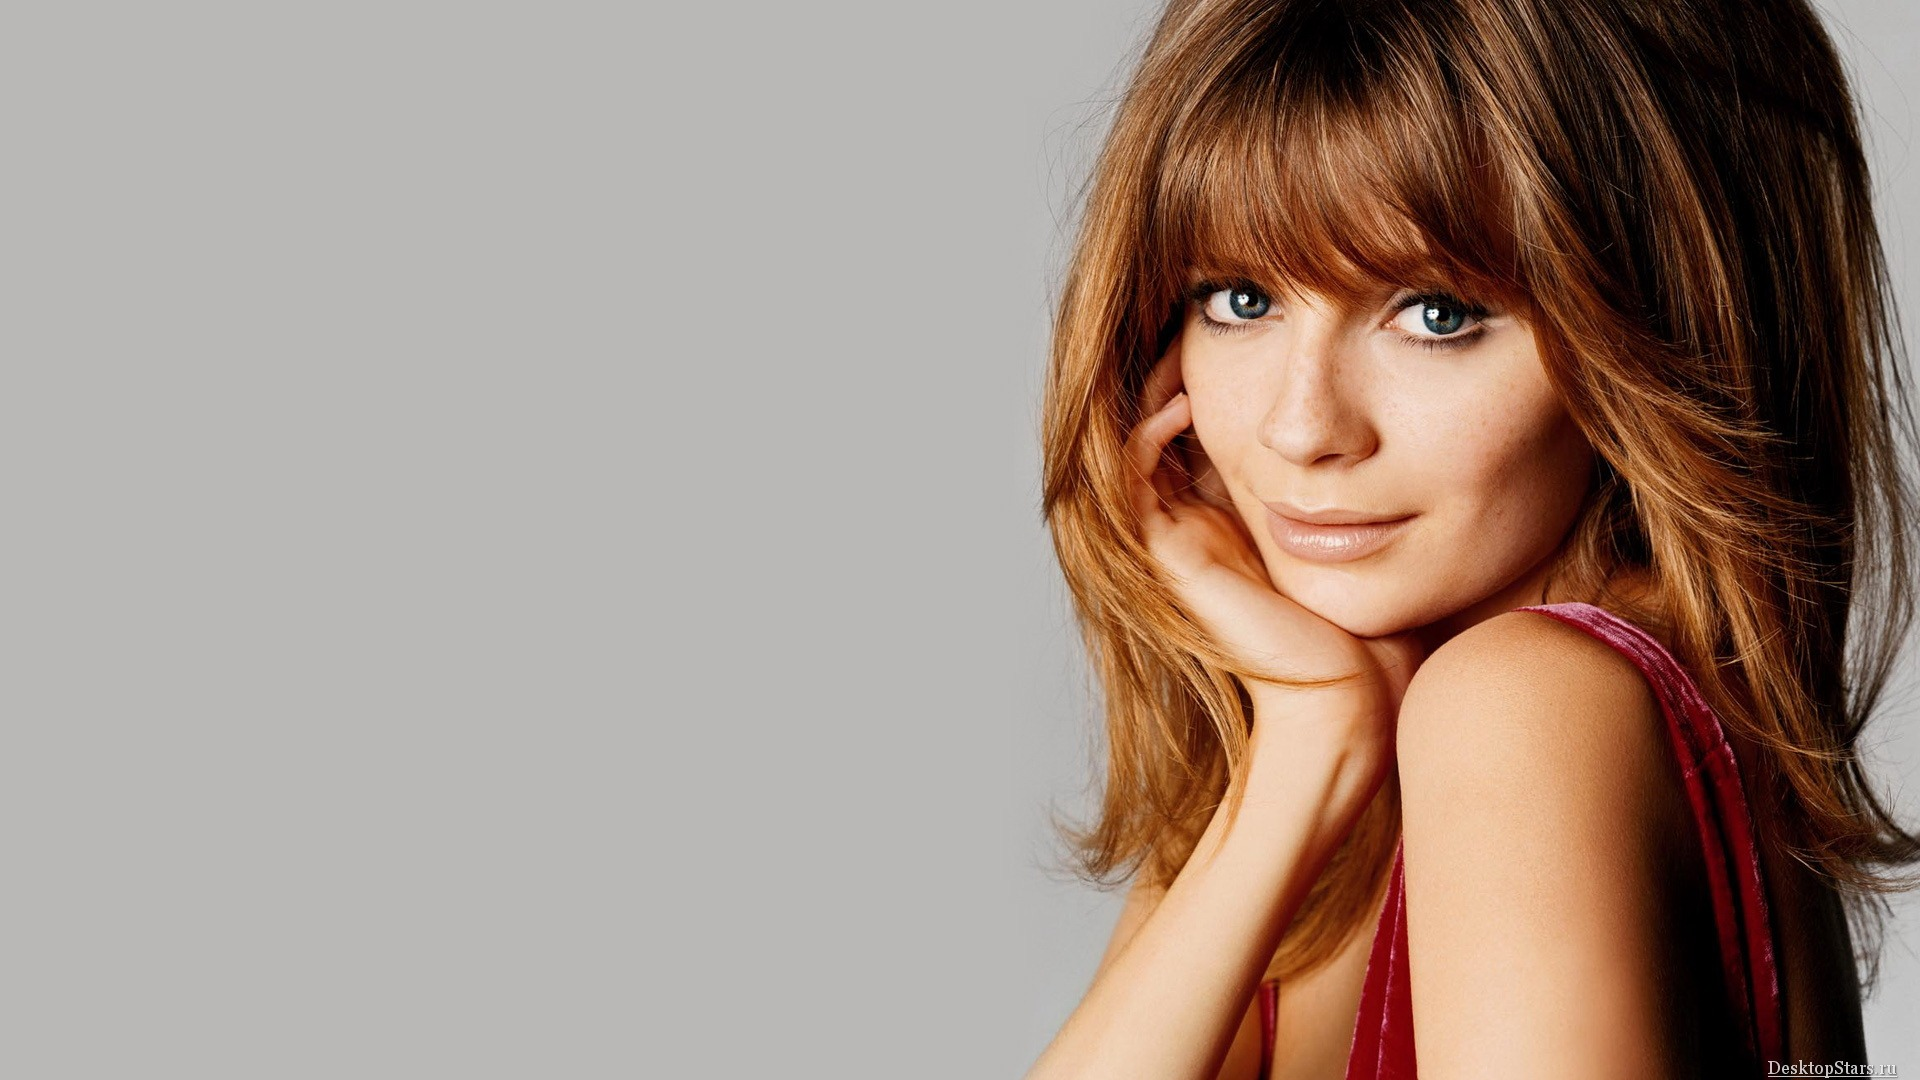 Mischa Barton #067 - 1920x1080 Wallpapers Pictures Photos Images